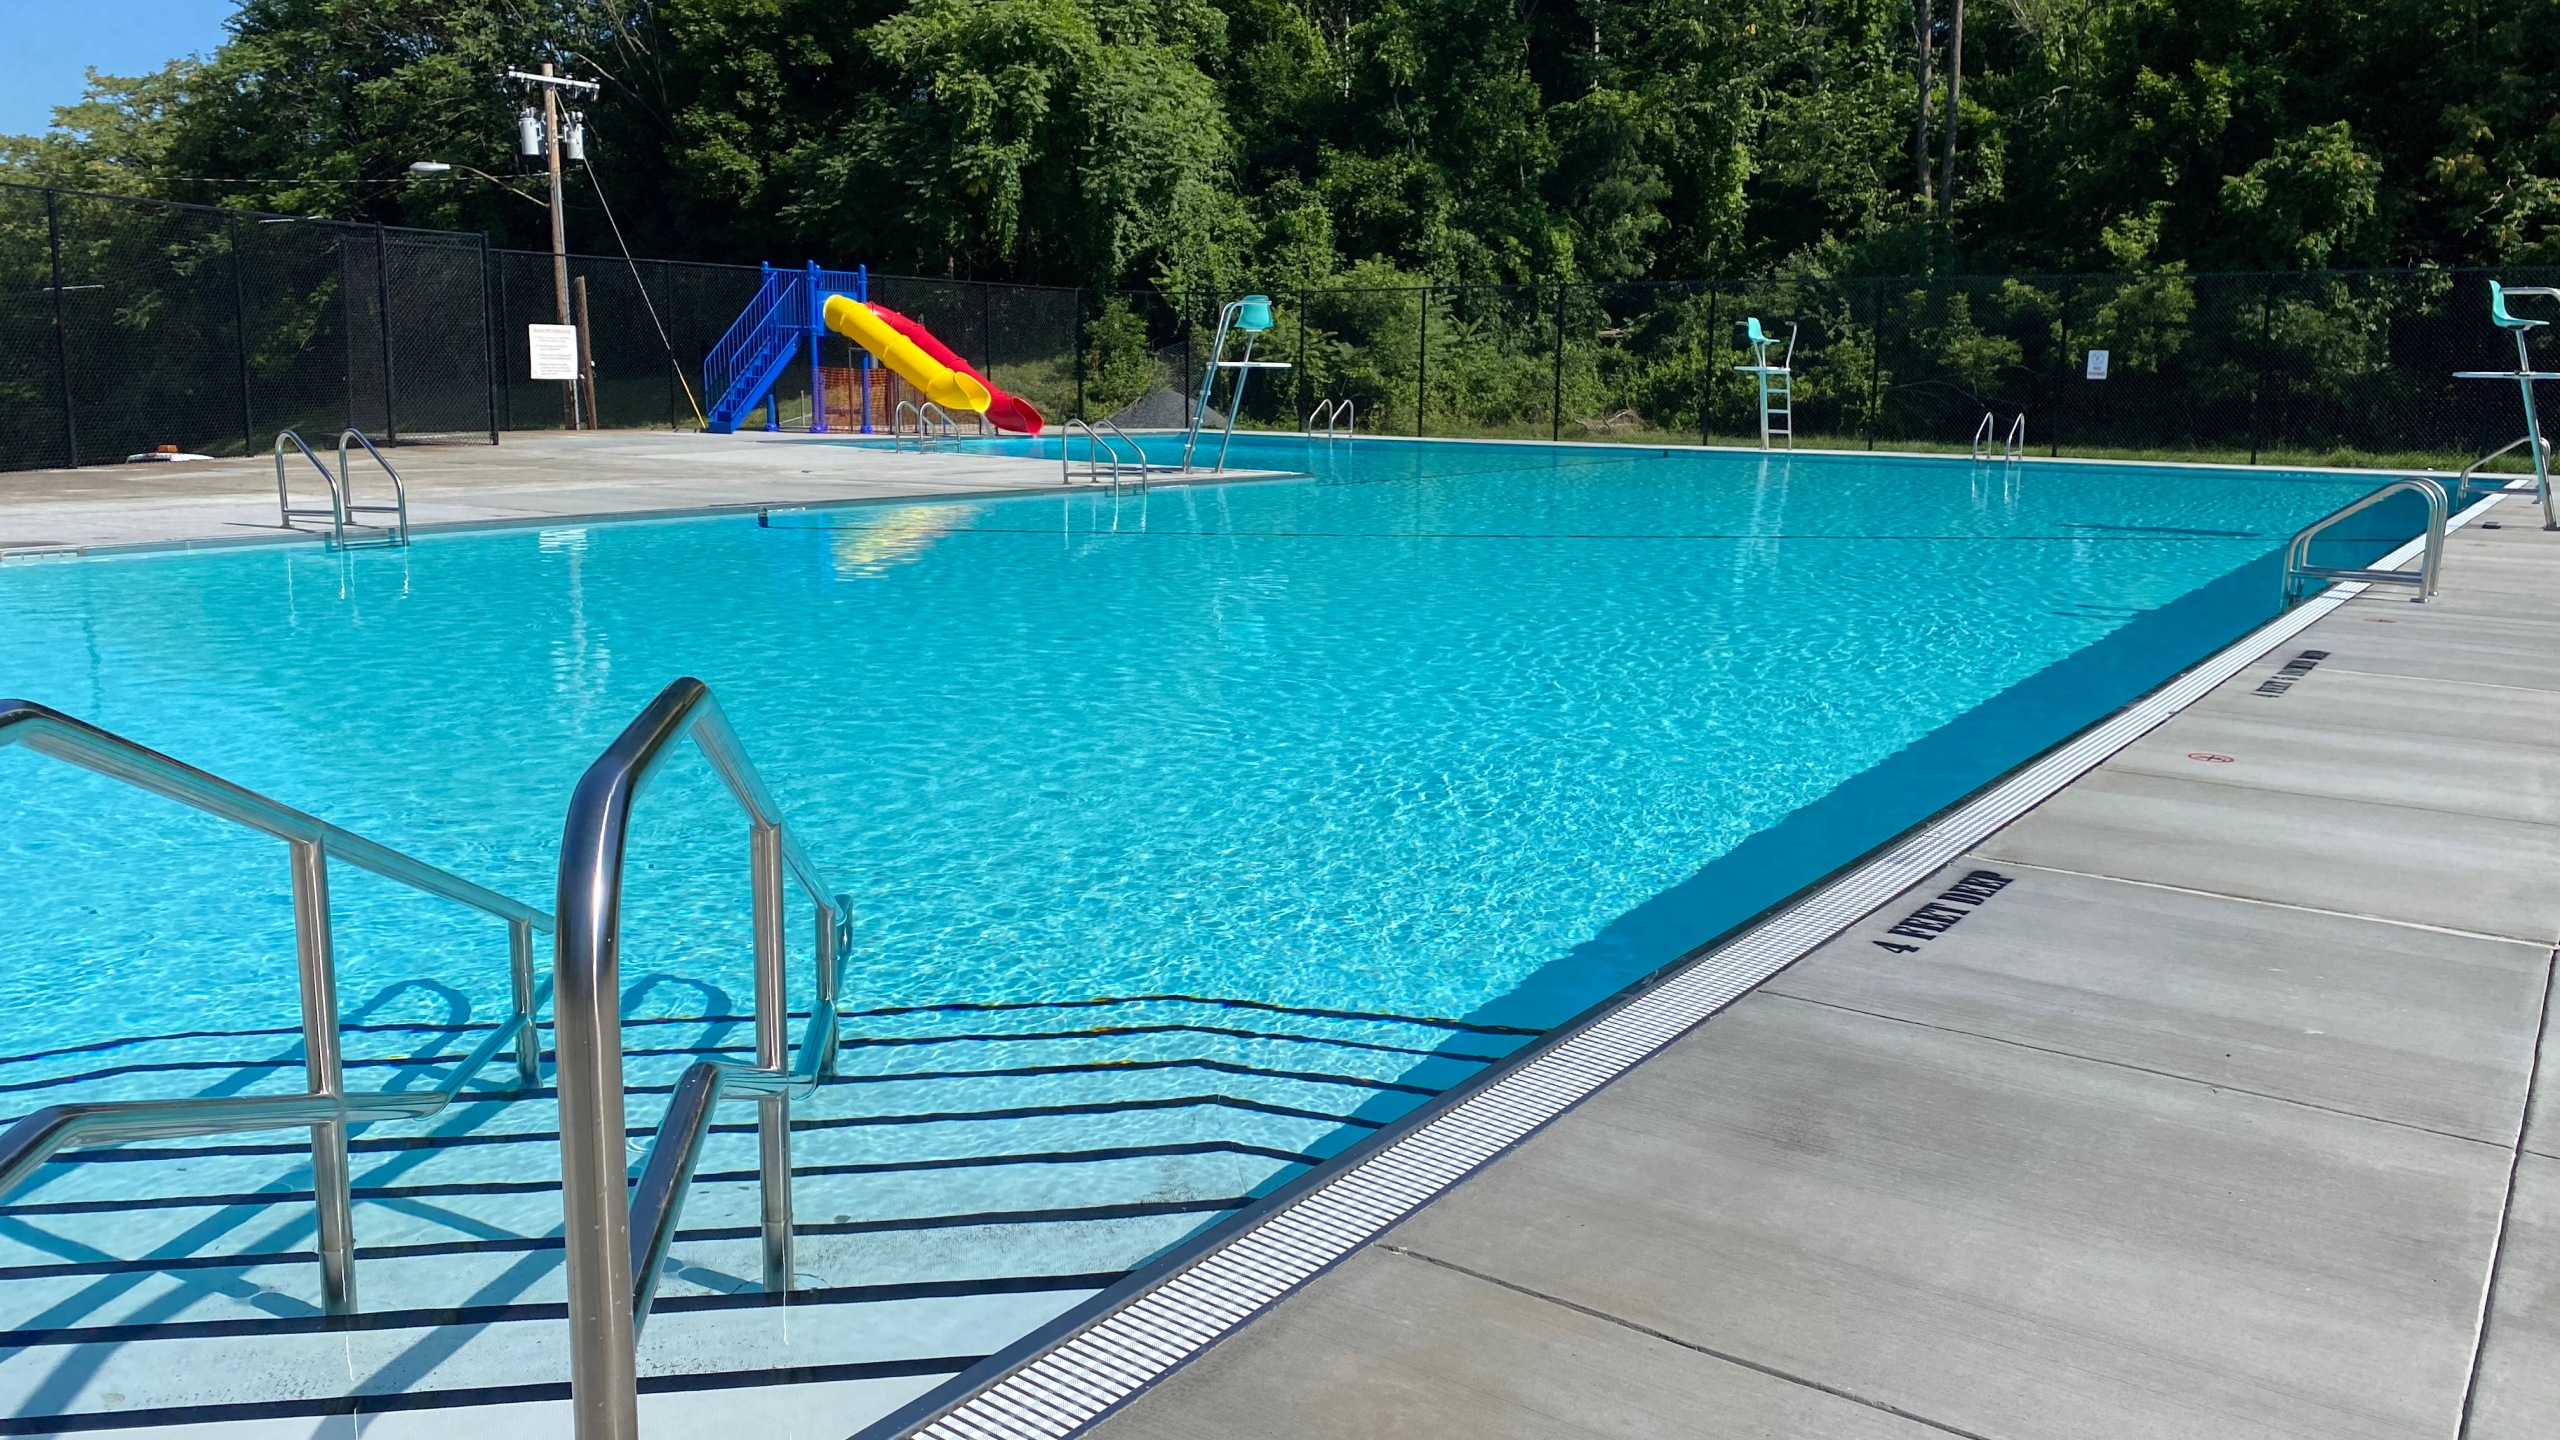 South Troy pool reopens